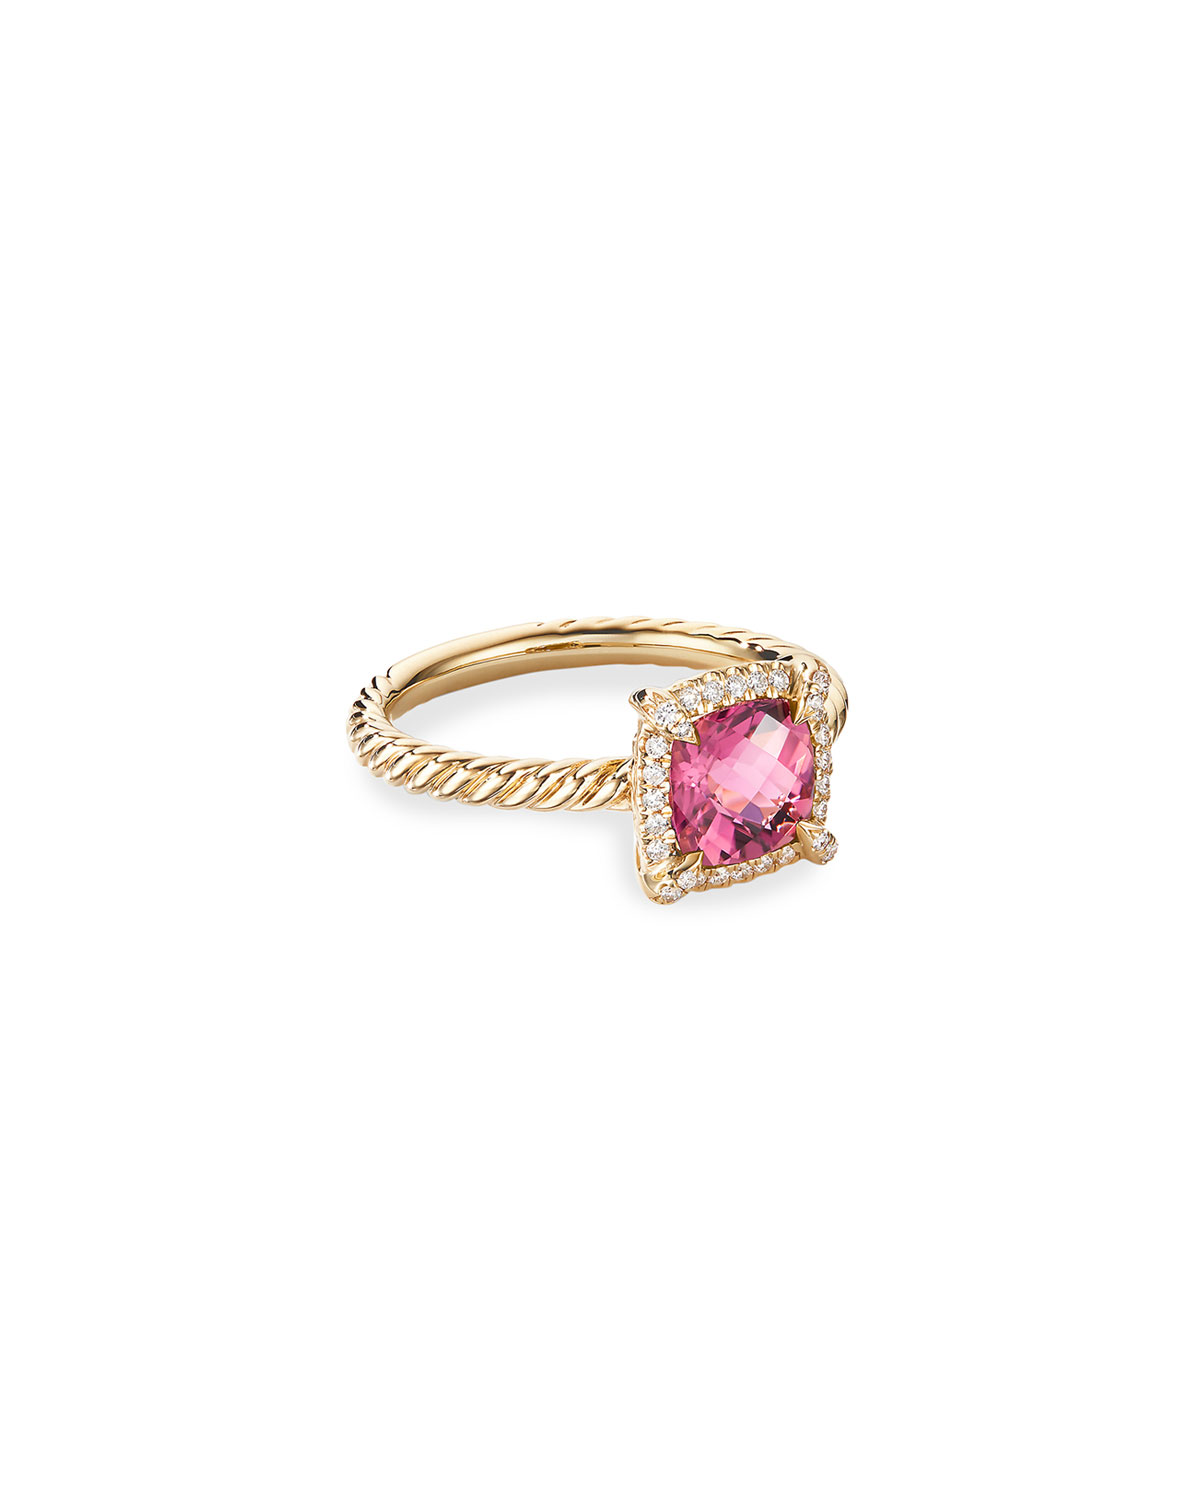 David Yurman Petite Chatelaine Pave Bezel Ring in 18K Gold with Tourmaline, Size 5